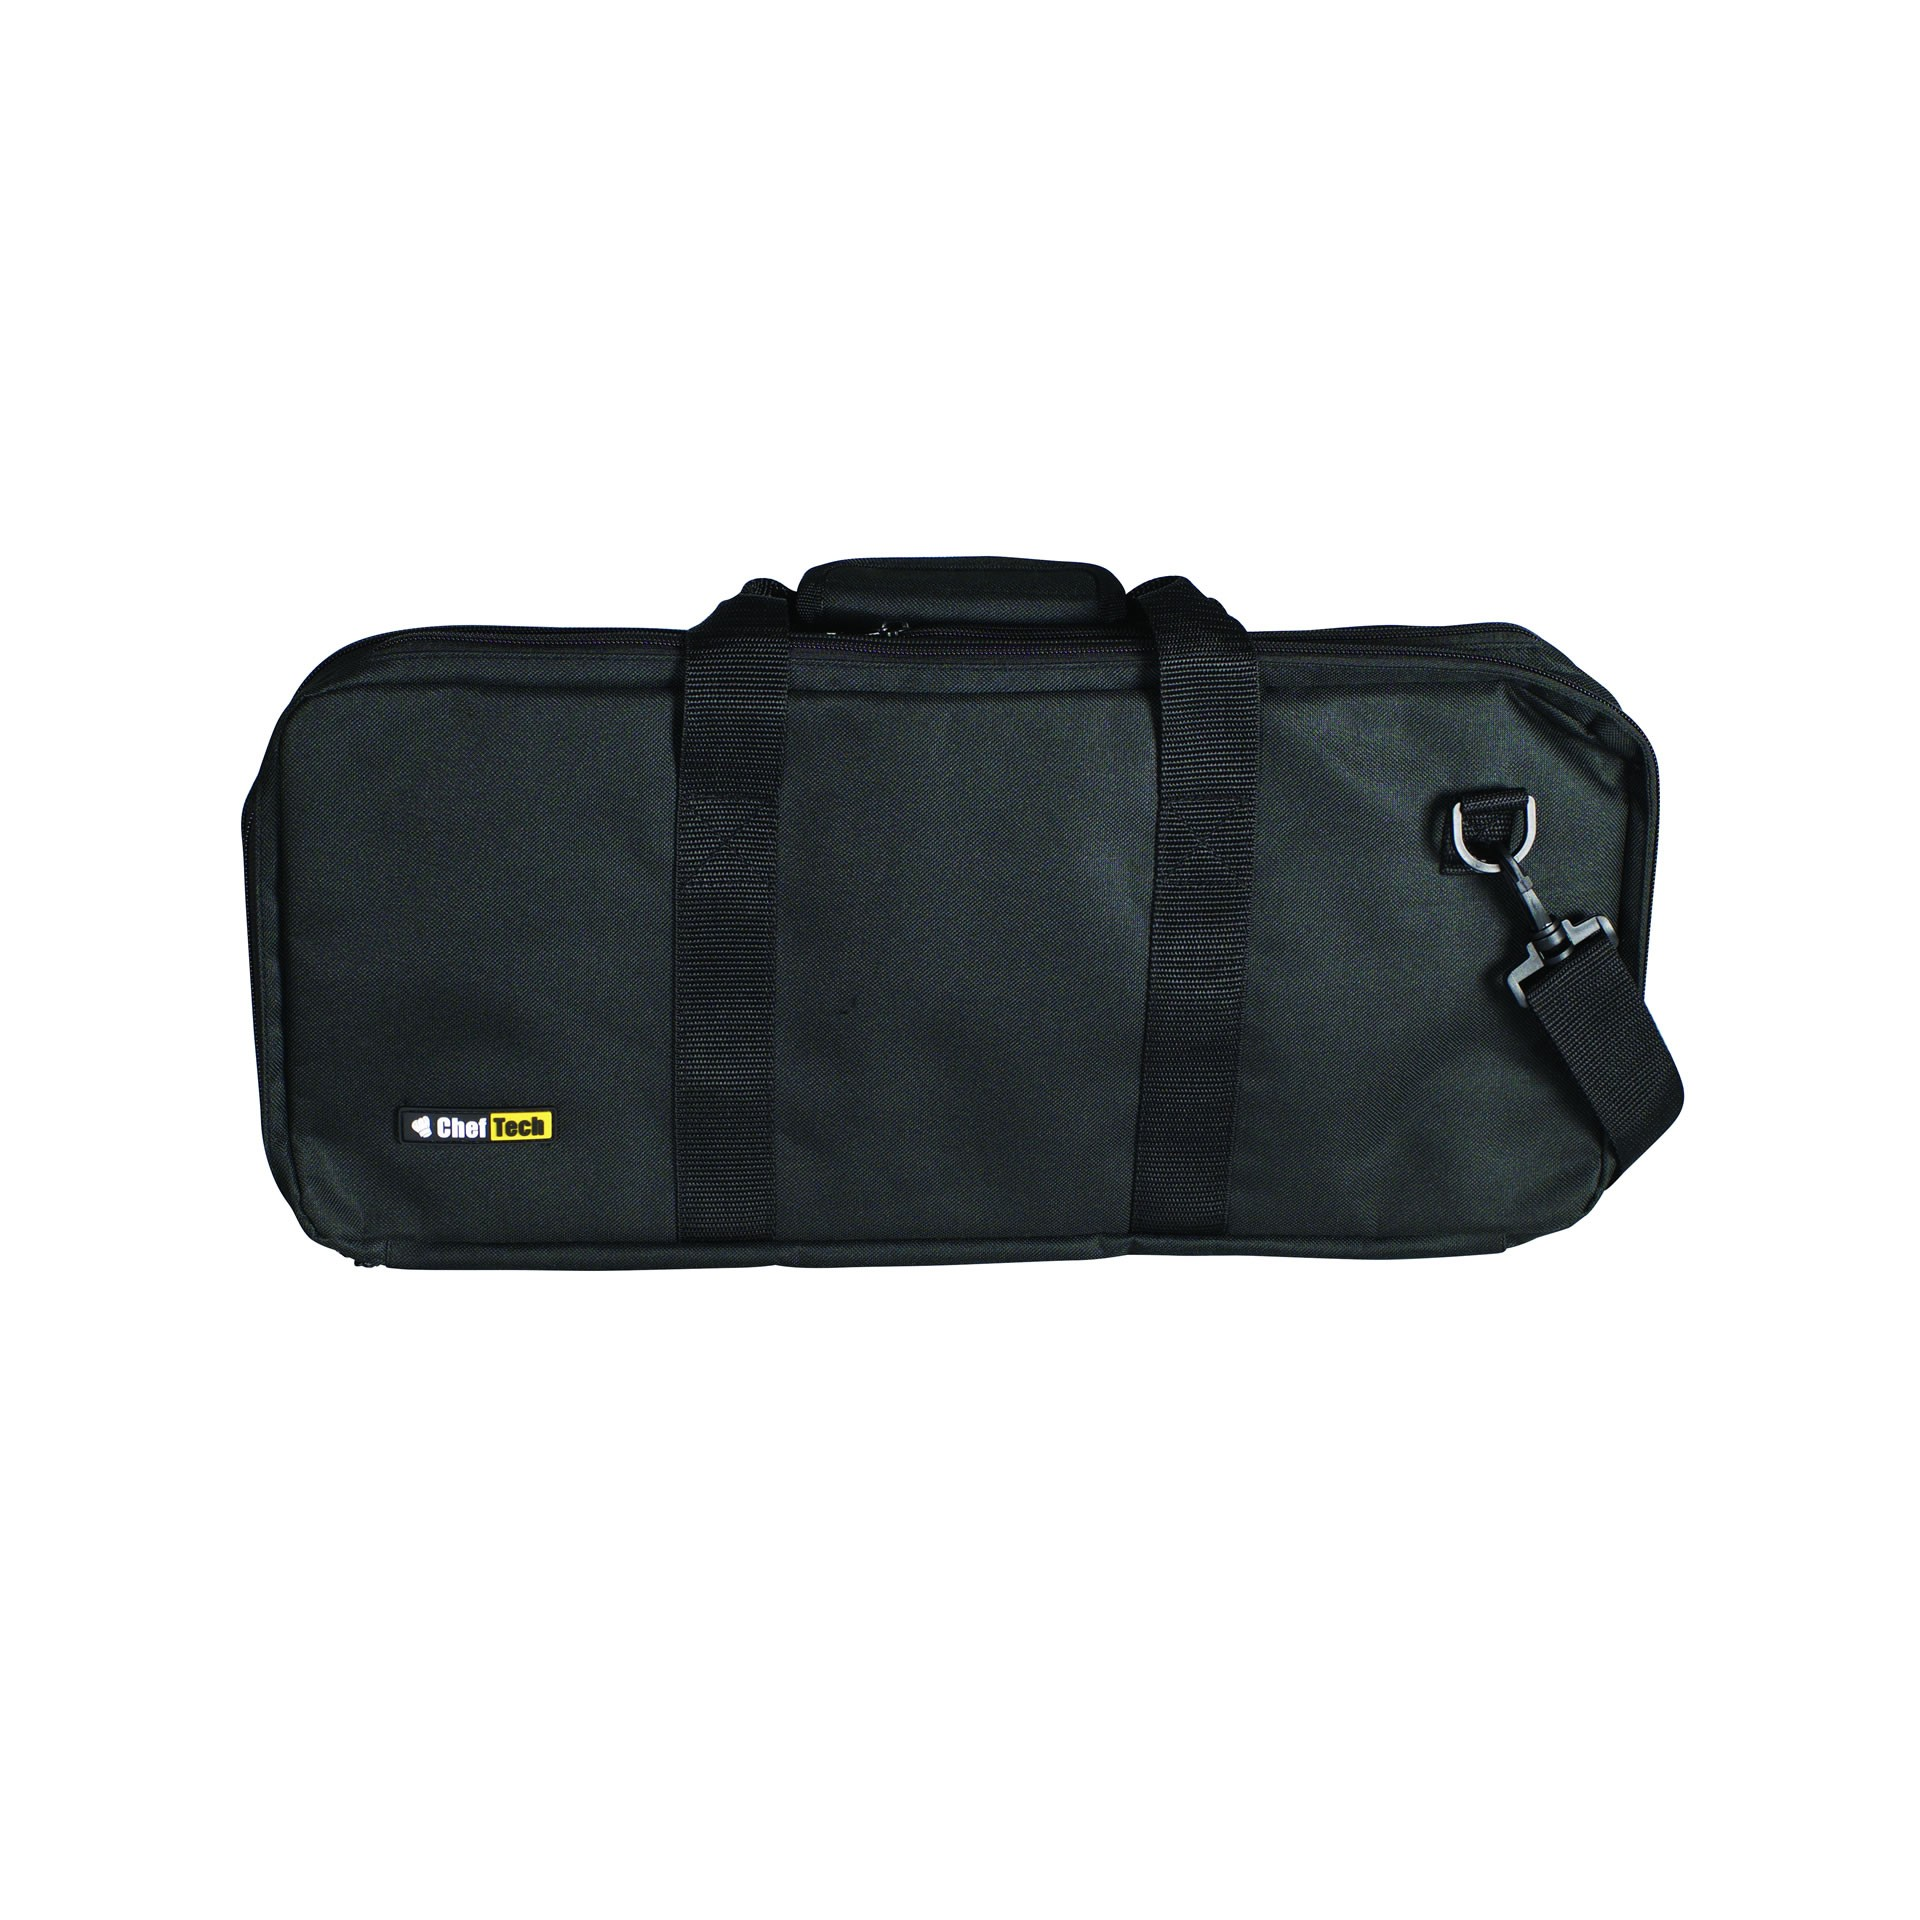 ChefTech 18 pocket knife roll with handles 250mm x 540mm